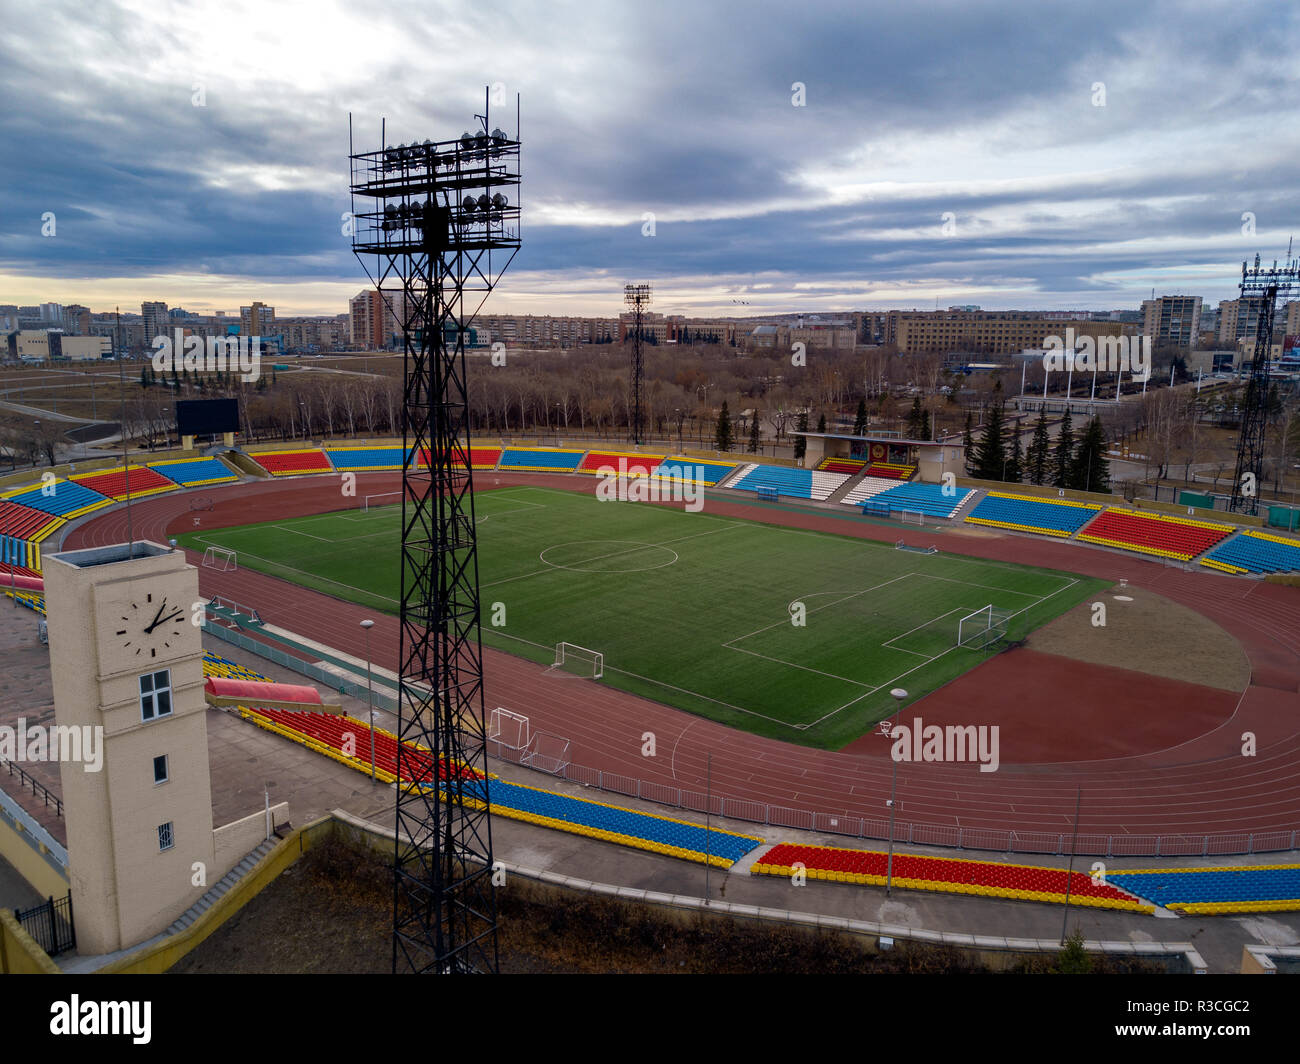 Aerial view of central football stadium and summer athletics classes place in the provincial city; bright tribunes for local competitions; inclement w - Stock Image